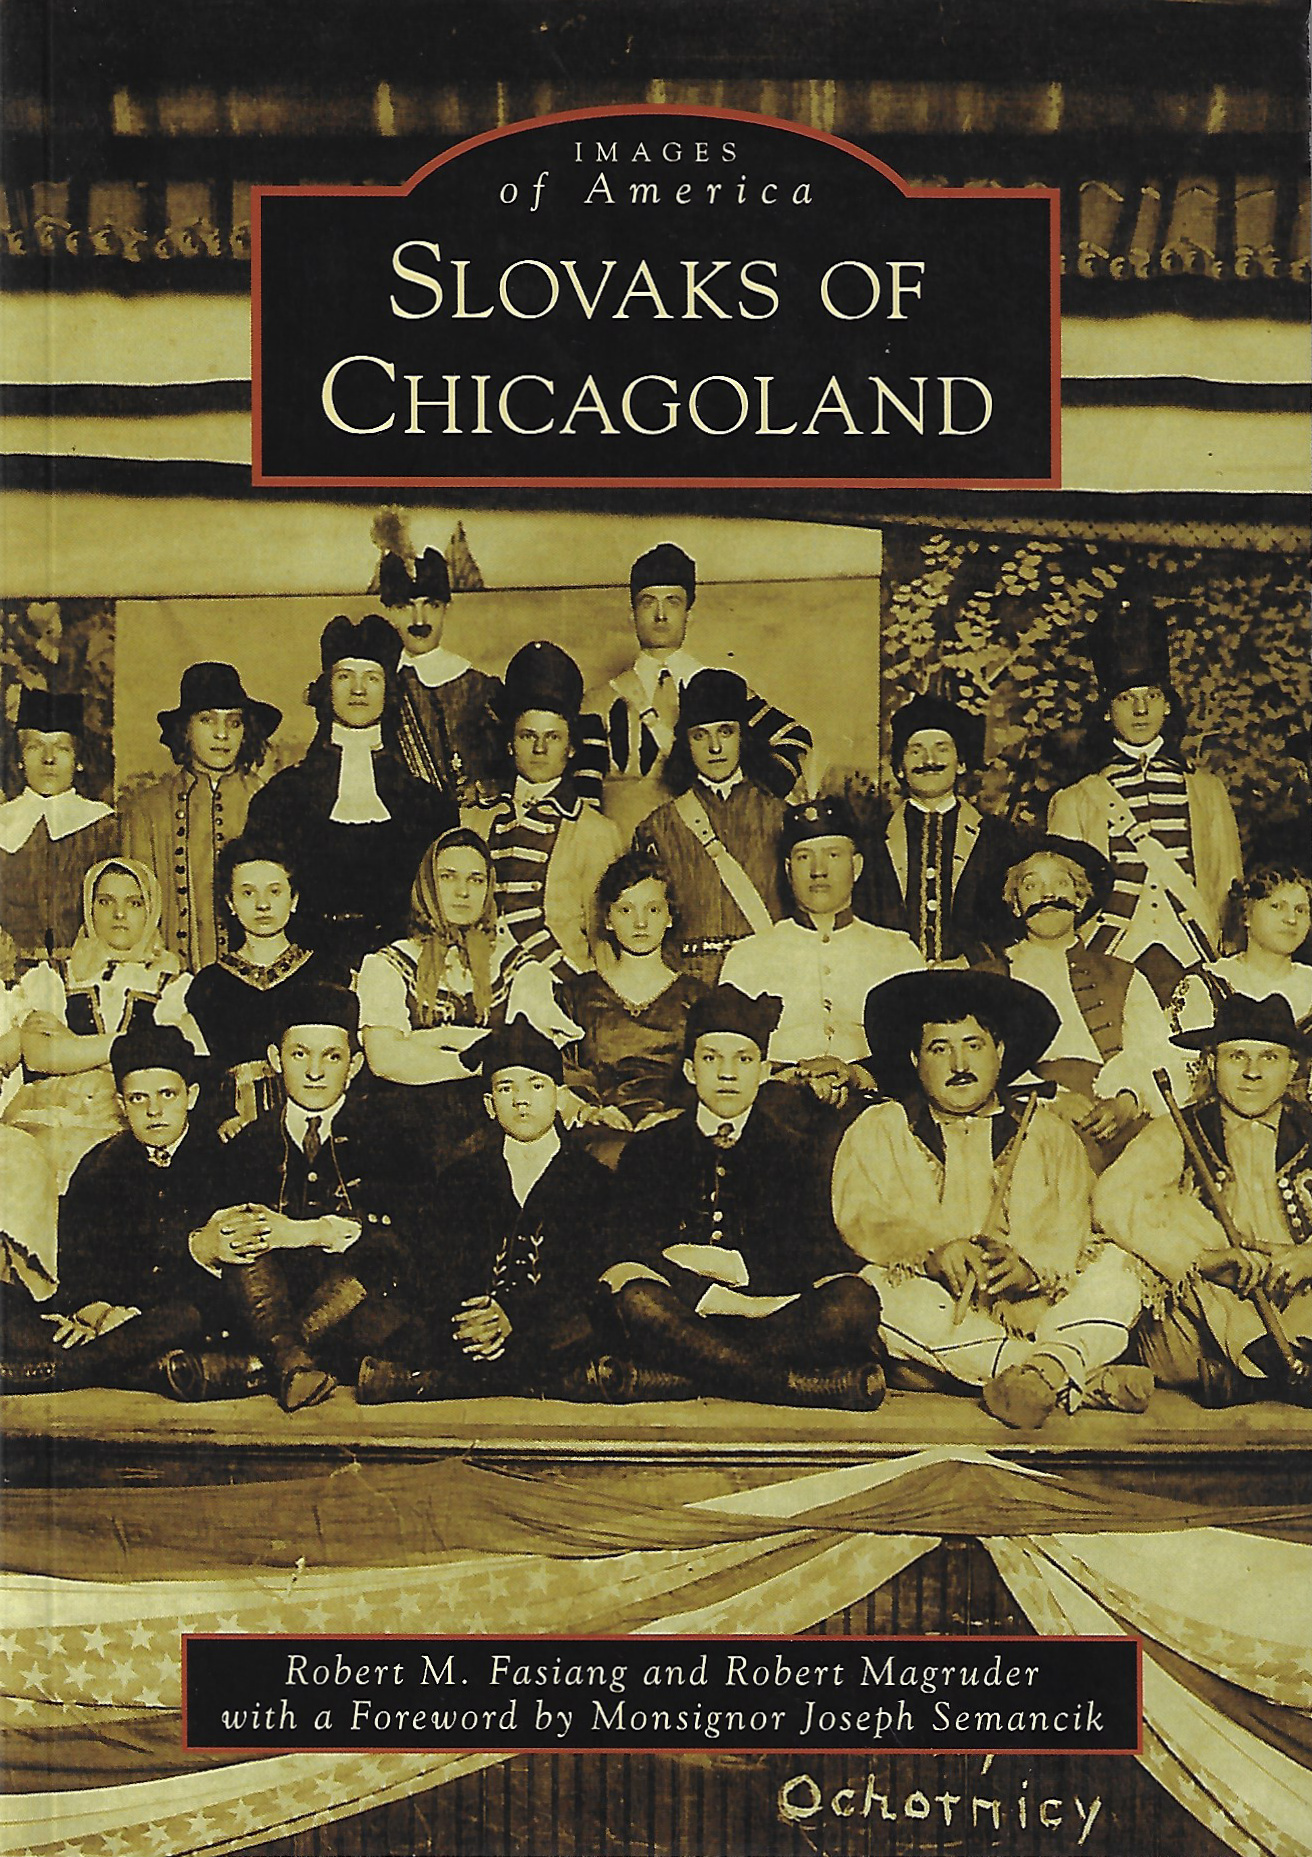 Slovak of Chicagoland by Robert M. Fasiang & Robert Magruder, 2014